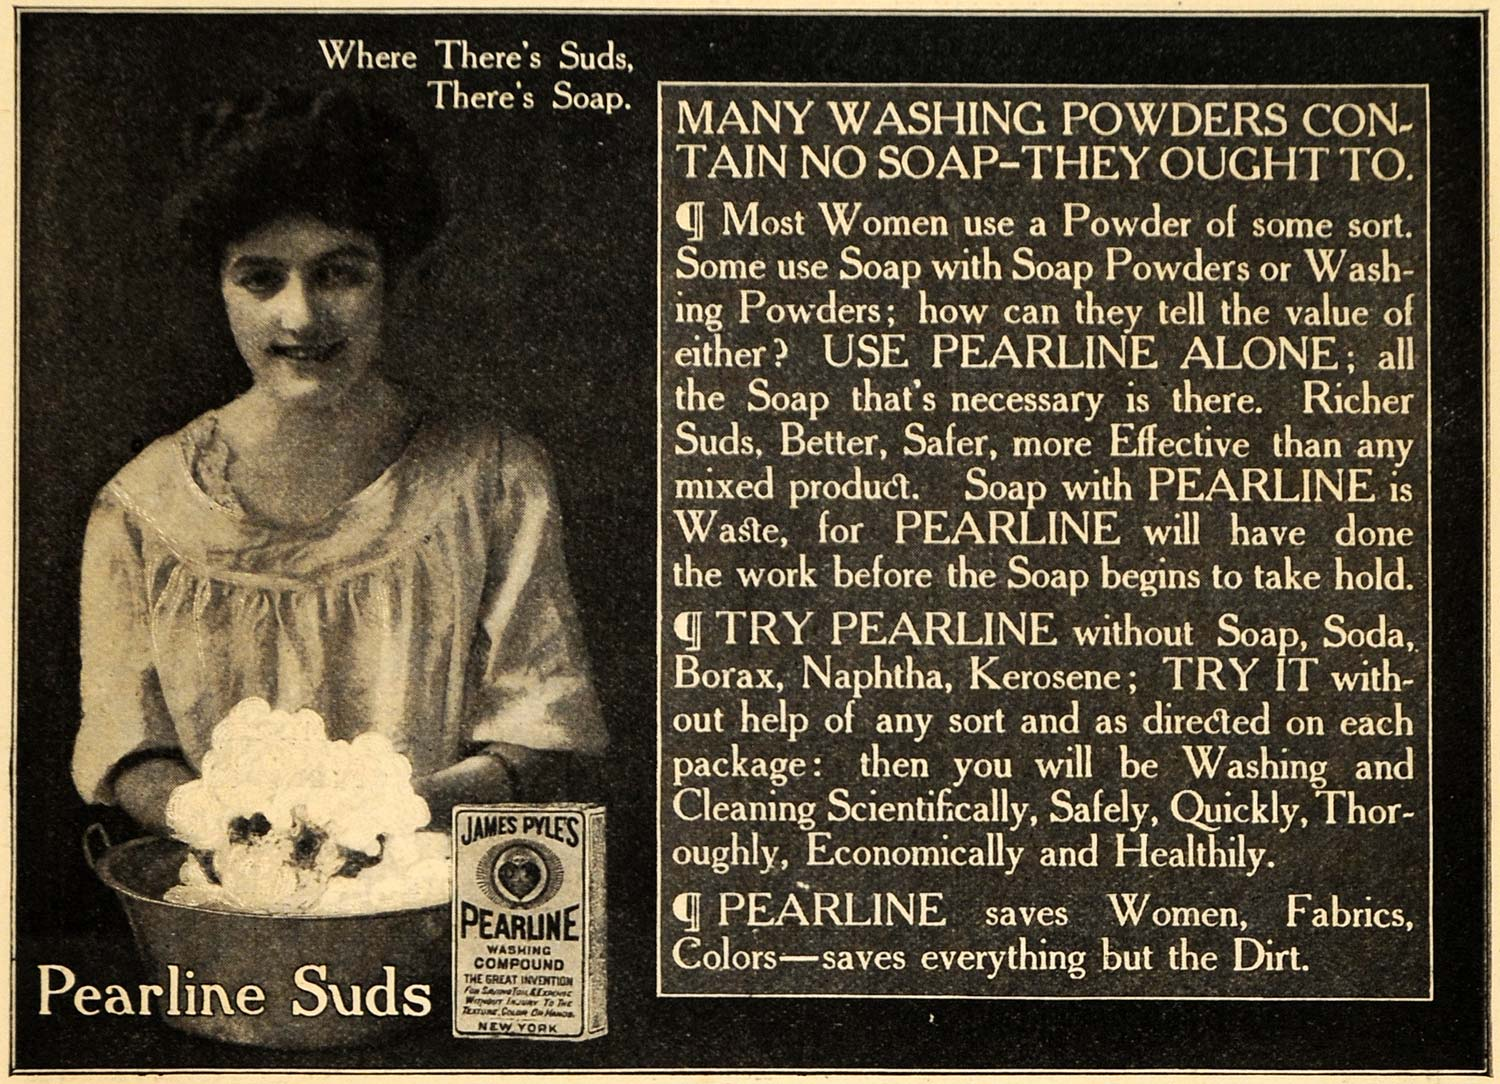 1909 Ad Pearline Suds Soap Box Woman Washing Laundry - ORIGINAL ADVERTISING HM1